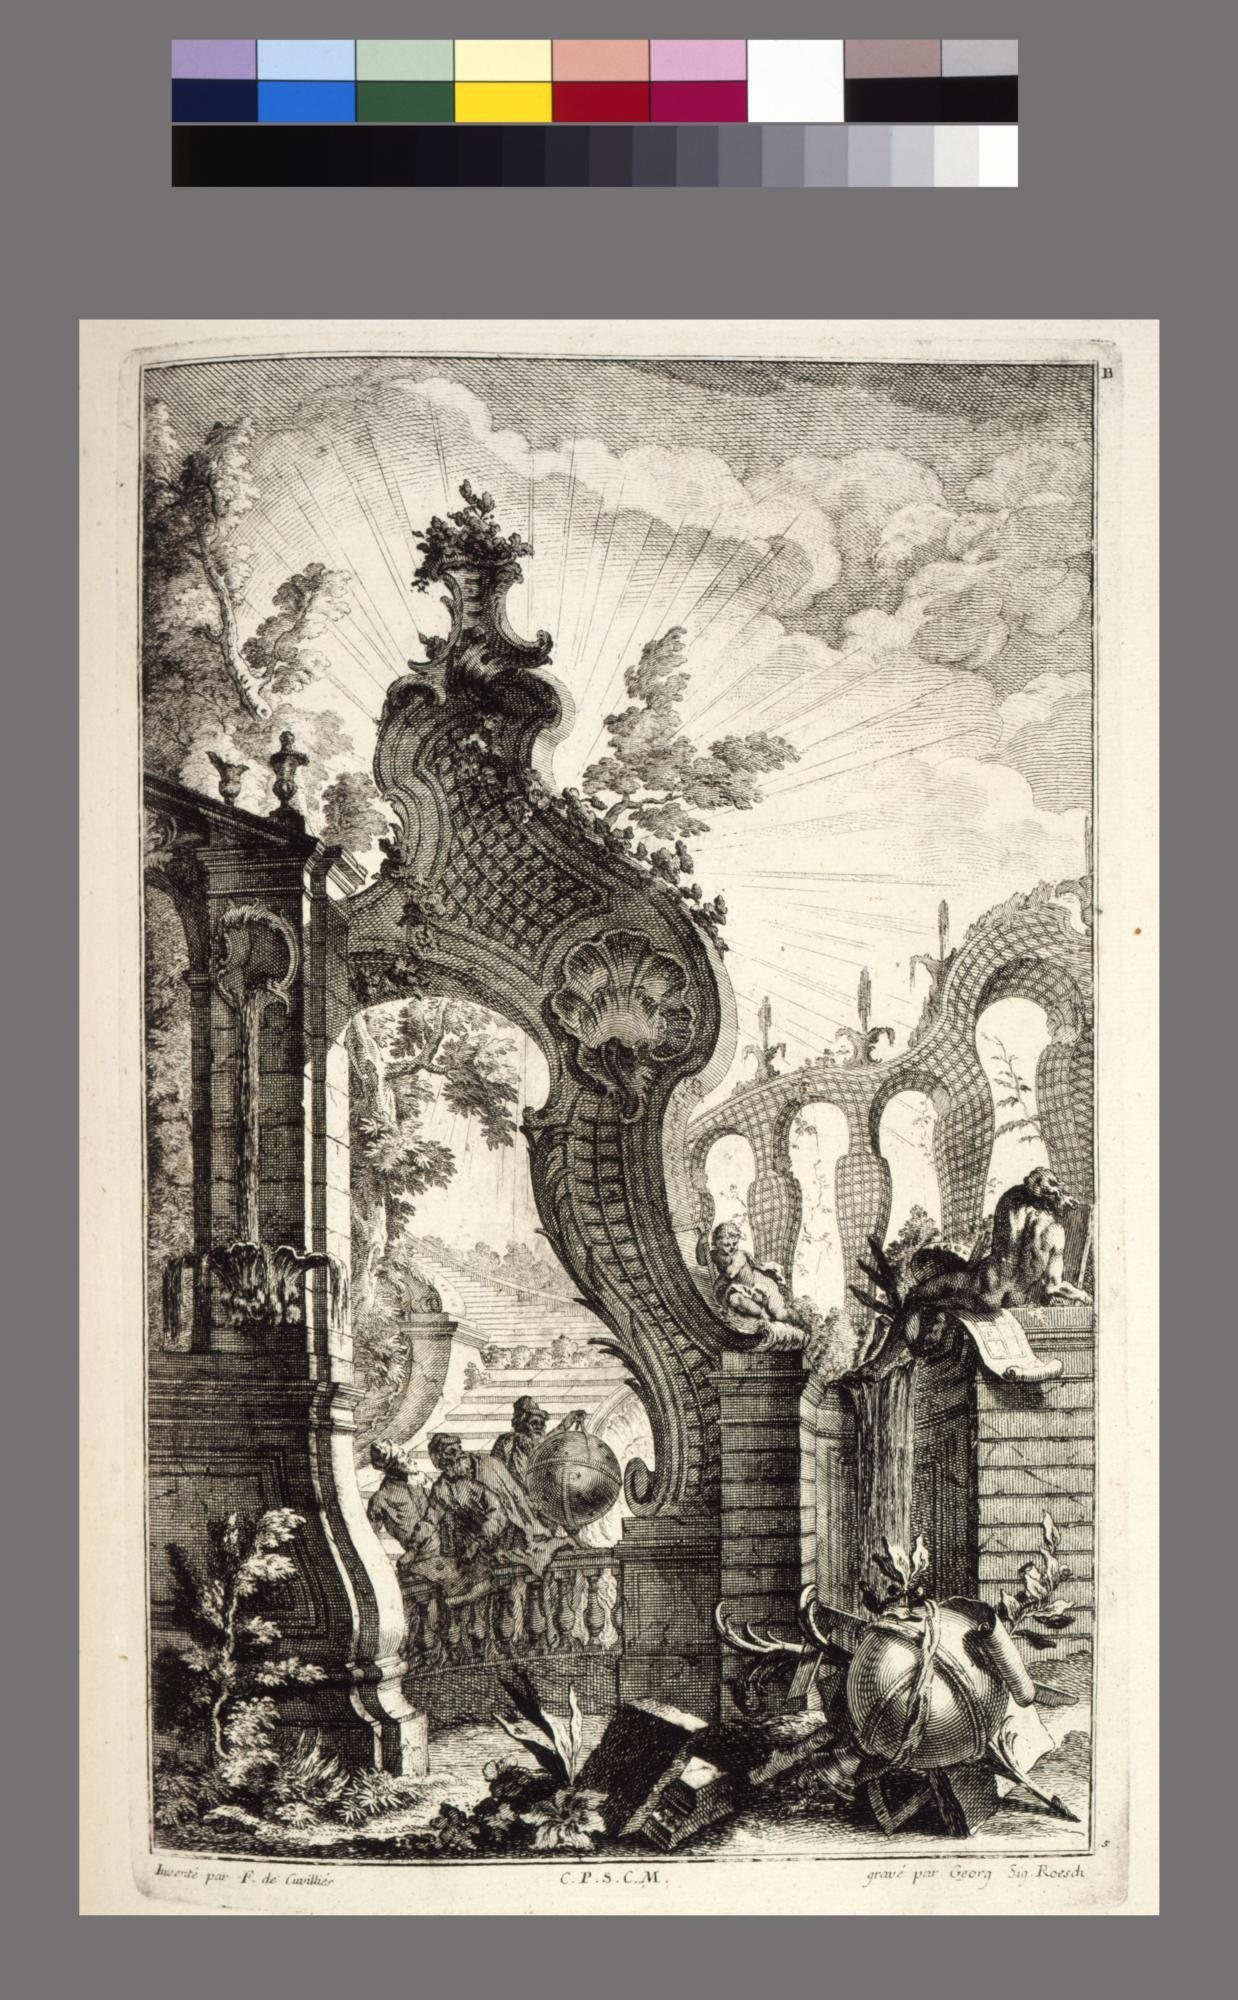 Collection of engravings after the designs of François de Cuvilliés, the elder and his son, François the younger (1731-1777)